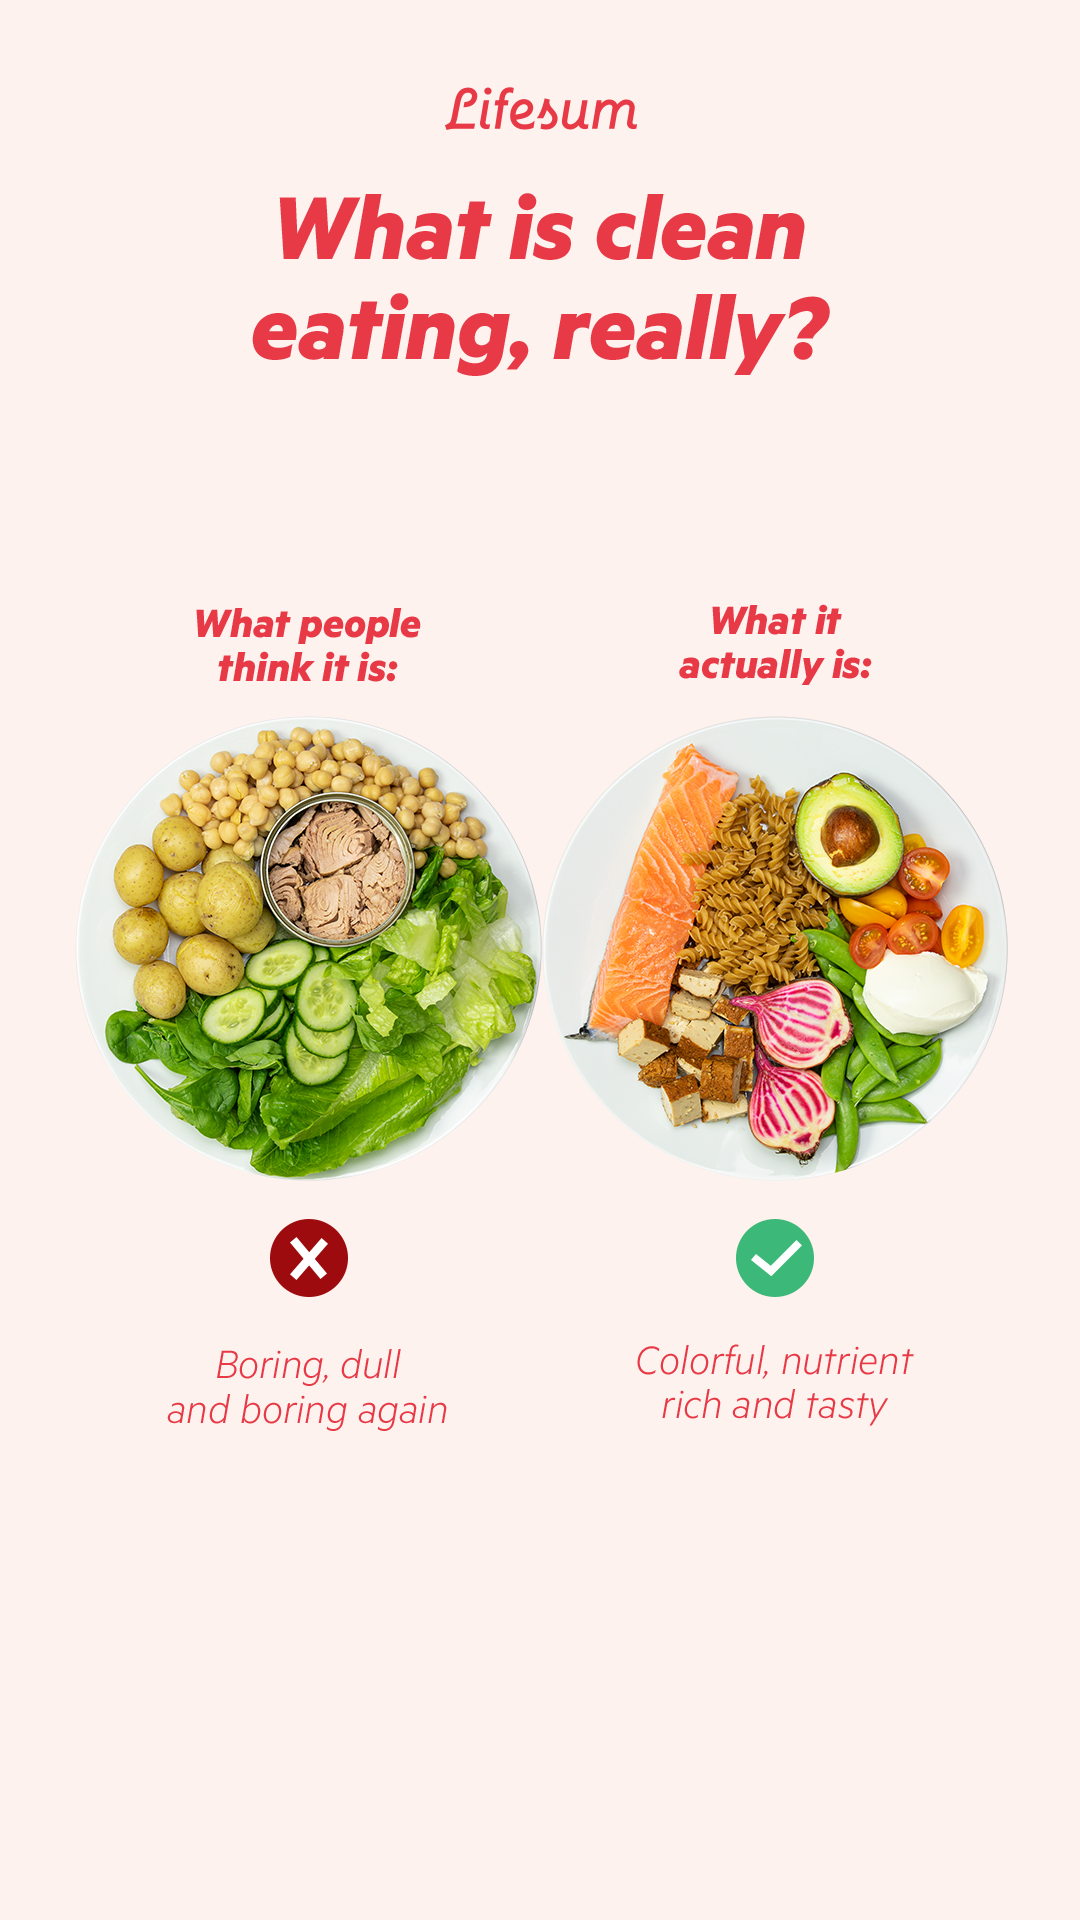 What is clean eating, really?